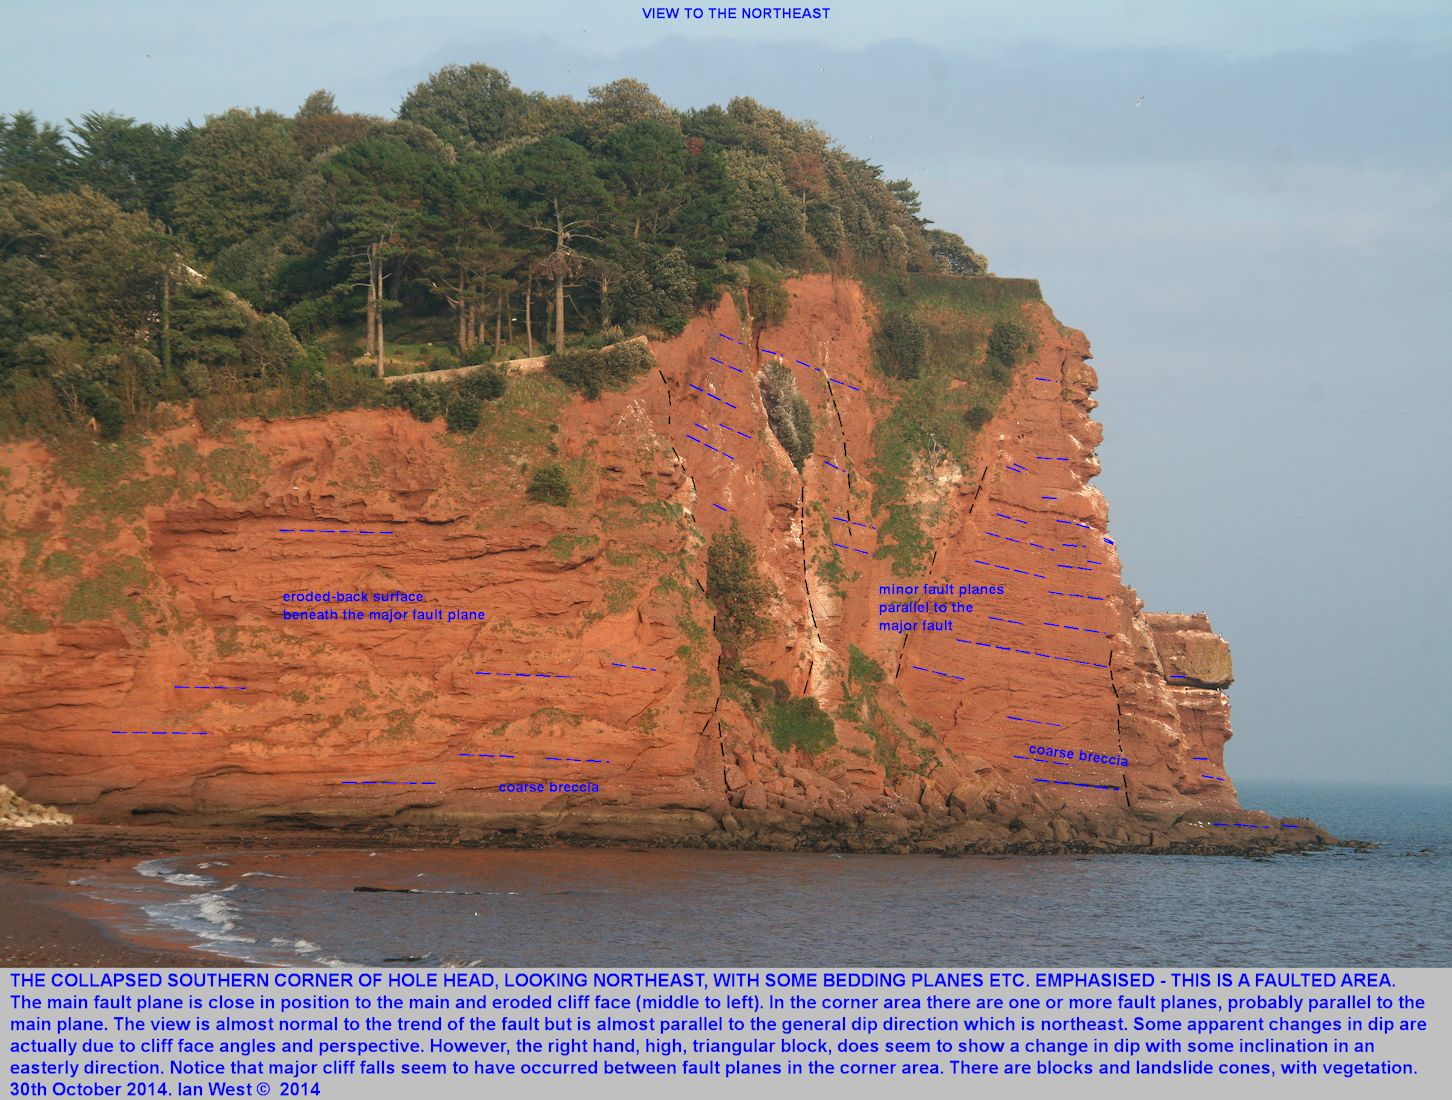 Collapsed southern corner of Hole Head, Dawlish, Devon, a location with faults, viewed from the south